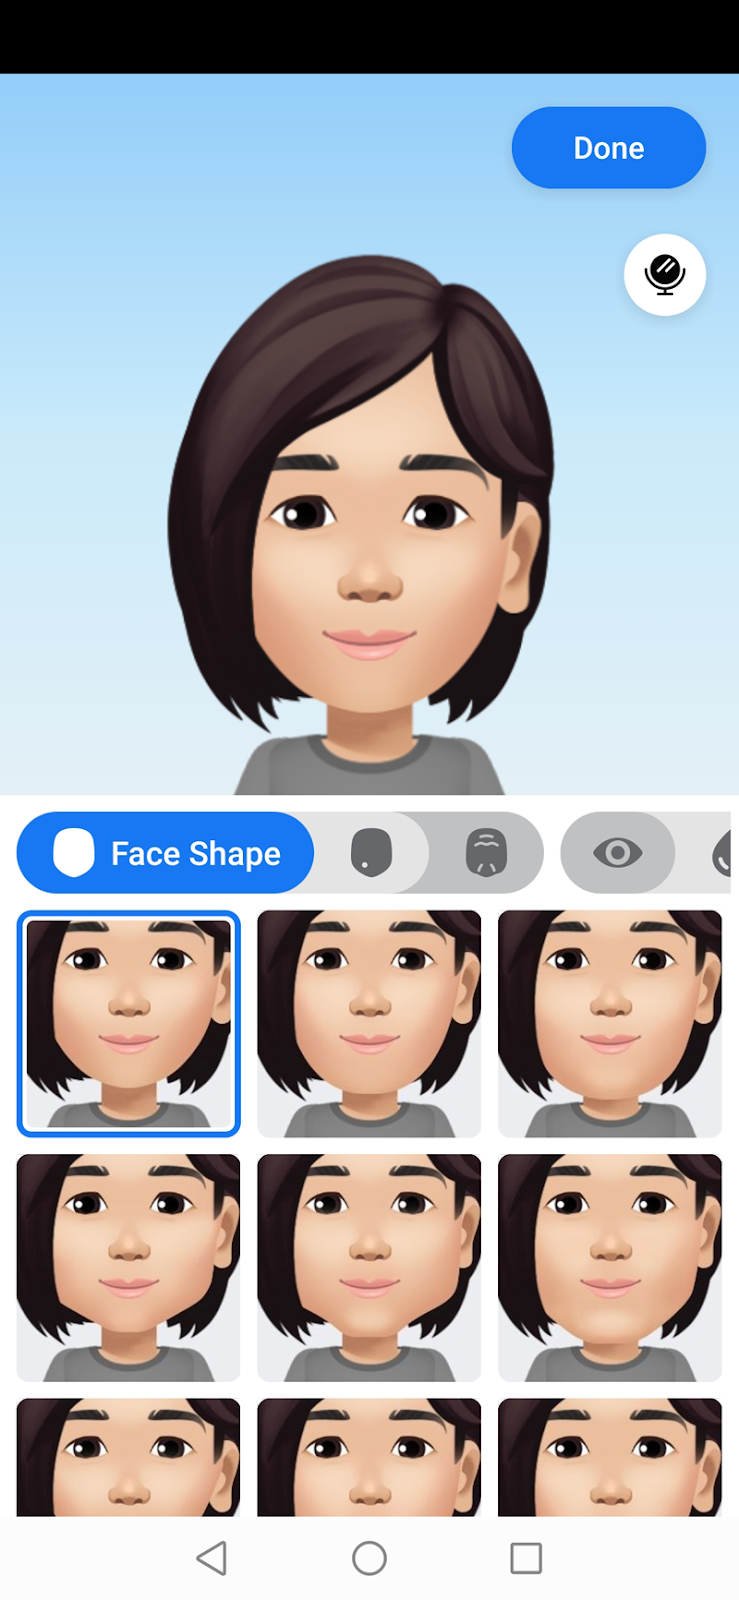 You can tweak your avatar's appearance to make it similar to yours